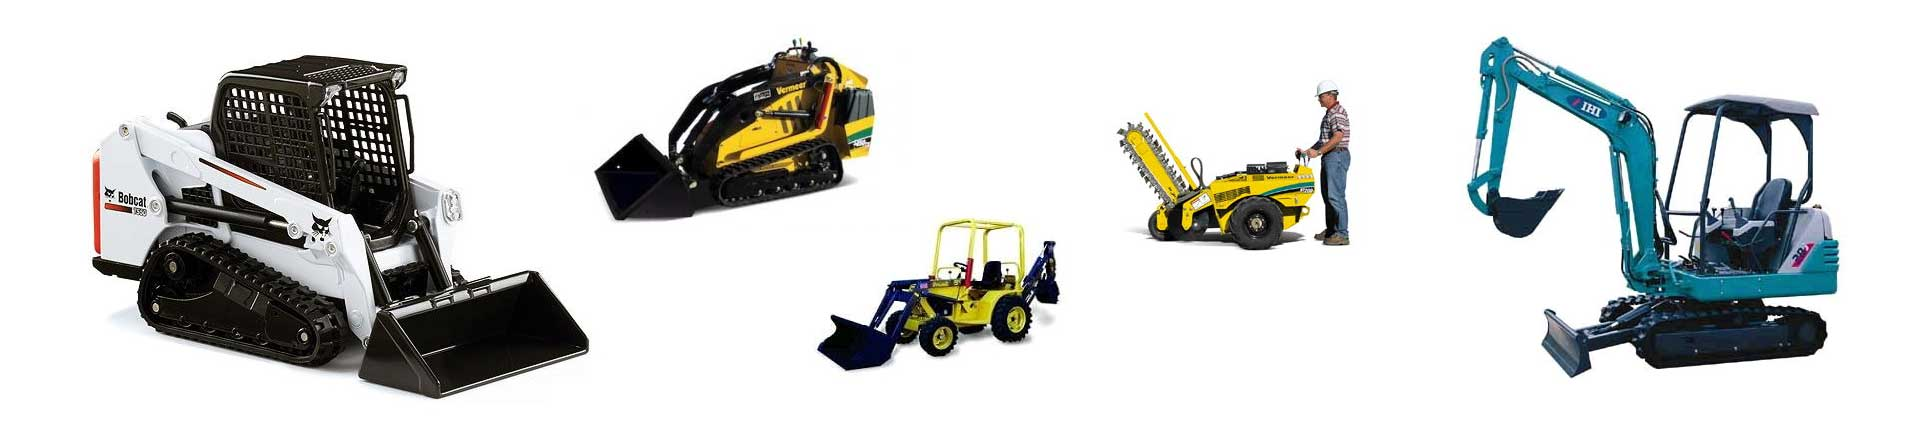 Equipment rentals in South Bend IN, Niles MI, Elkhart, Mishawaka